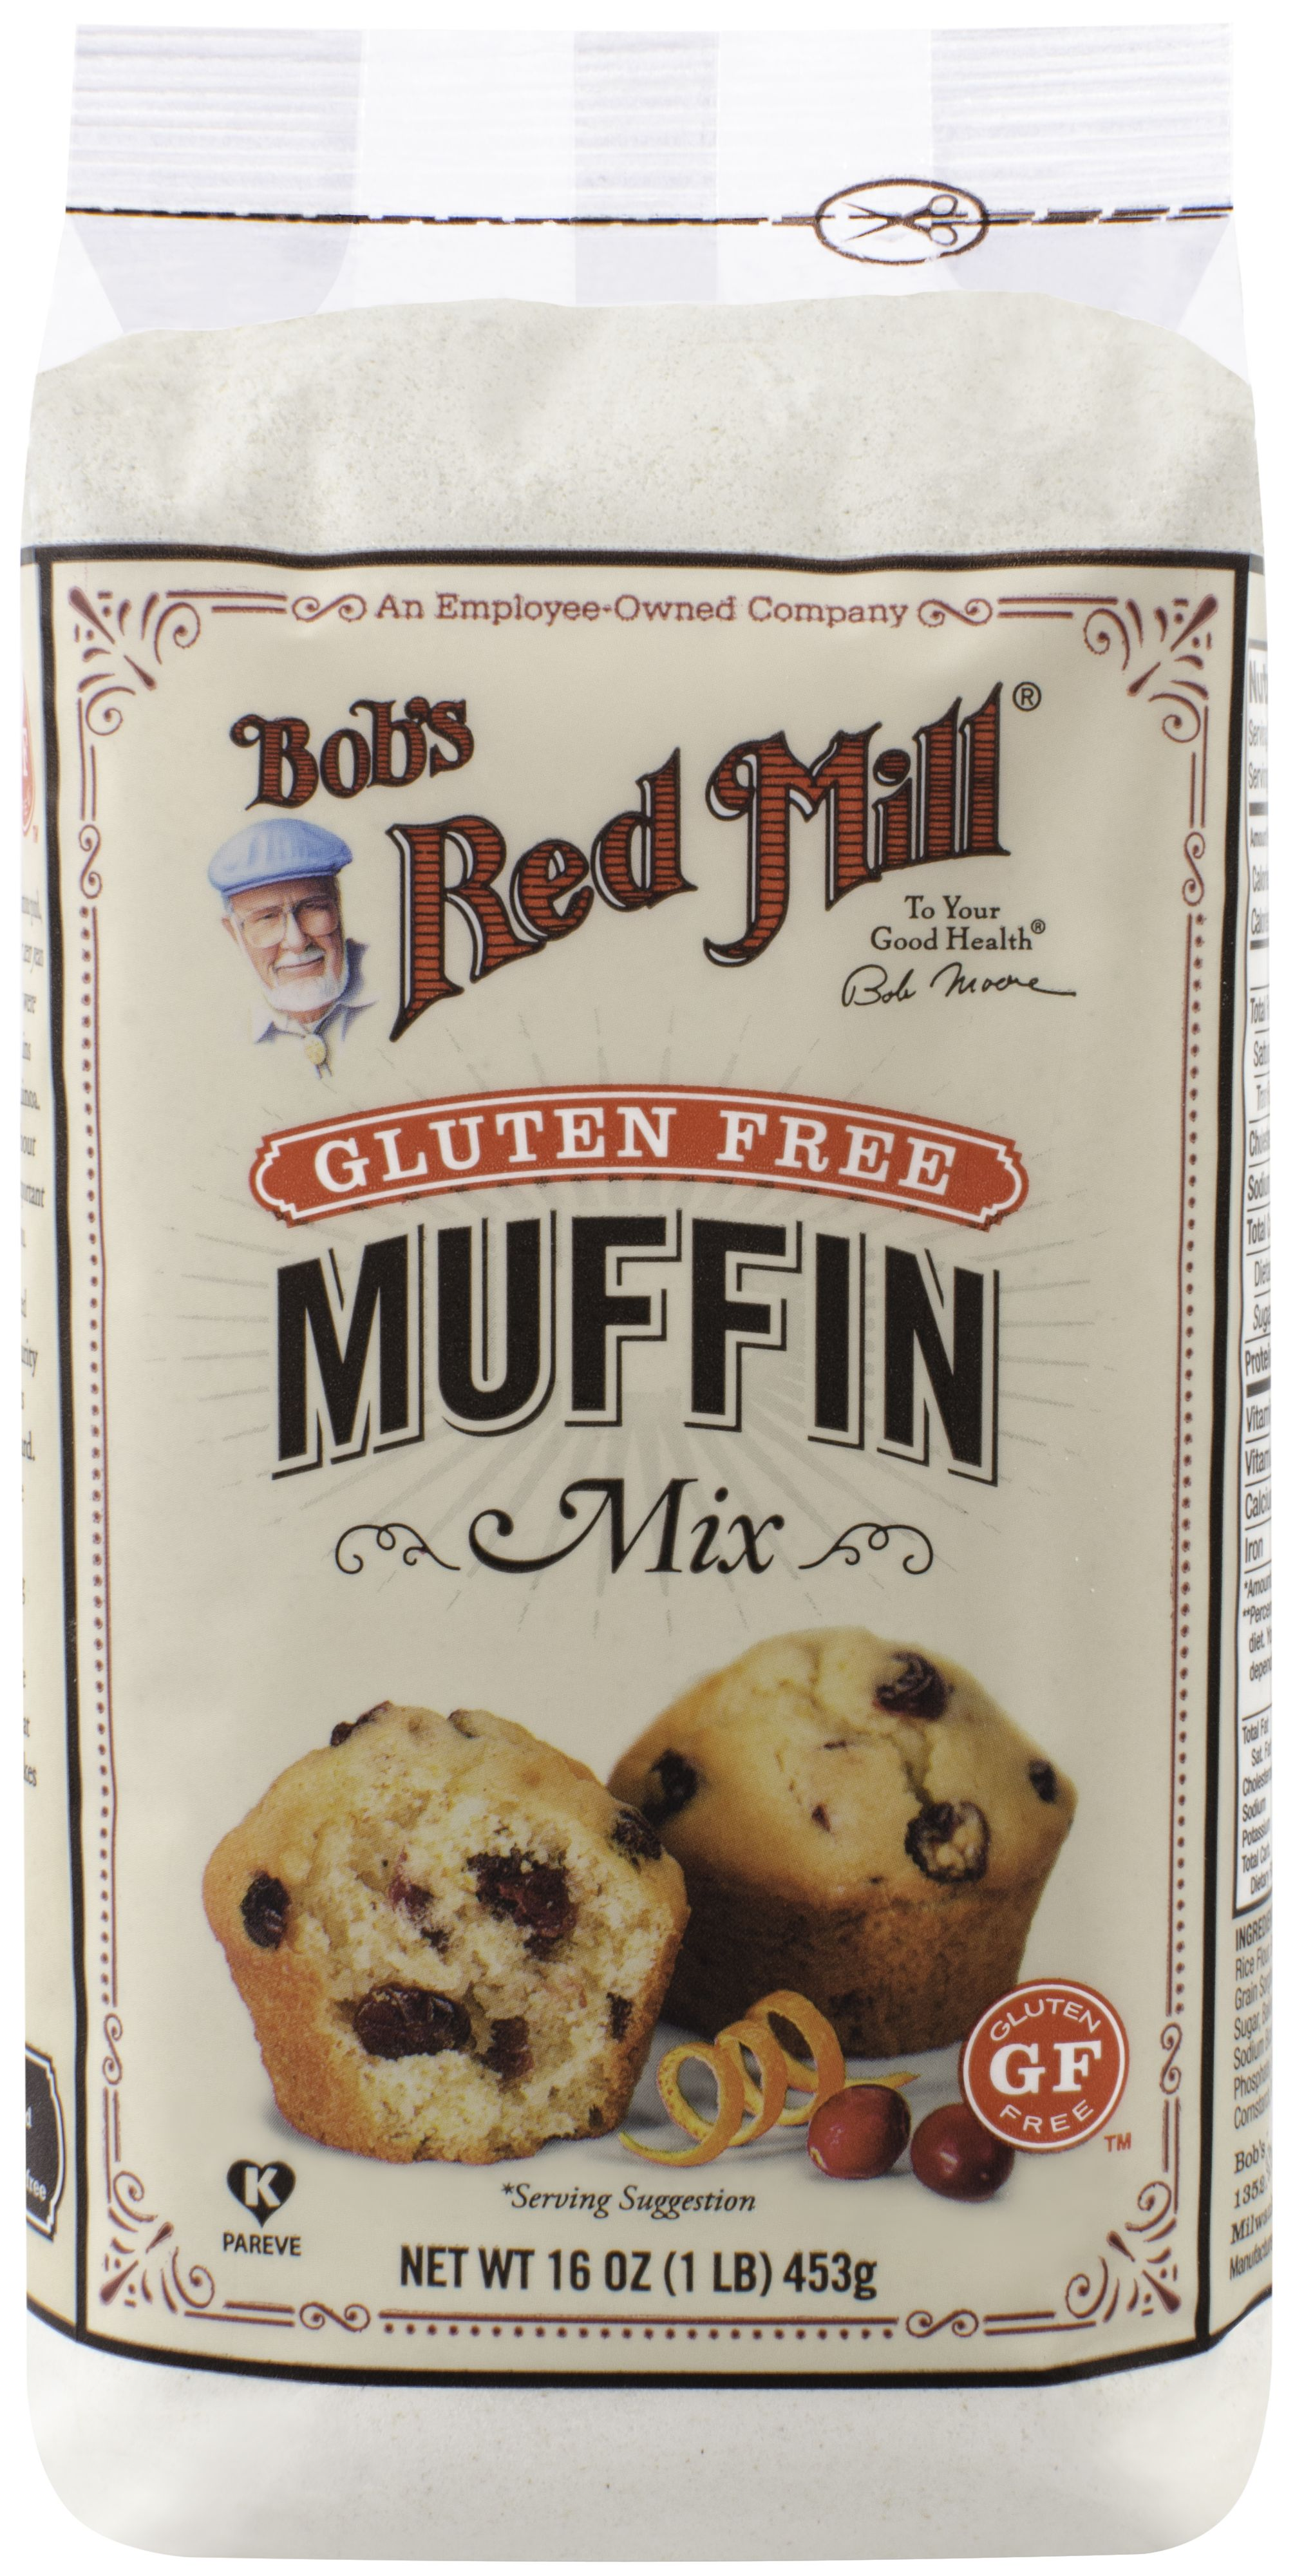 "With Bob's Red Mill Gluten Free Muffin Mix, making scrumptious gluten free muffins at home is as easy as 1, 2, 3! Just combine the mix with a few simple ingredients, add your favorite ""mix-ins"" (fruit, nuts or chocolate), and bake. It's never been easier to enjoy simple, wholesome gluten free muffins at home. Mixed and Packaged in our Gluten Free Facility, each batch is tested in gluten free laboratory to ensure its gluten free status. Dairy Free"